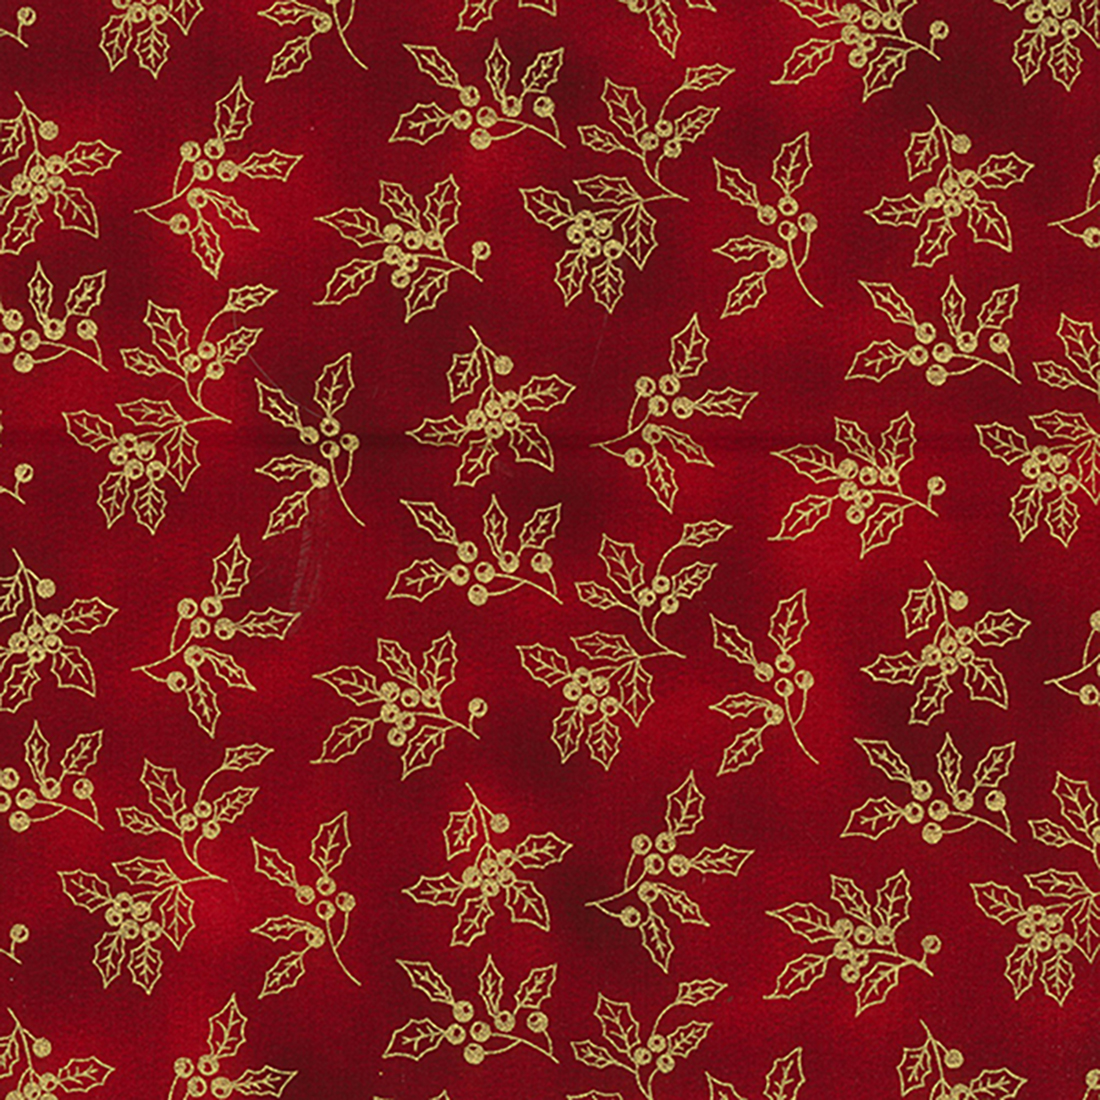 Xmas Holly Foil Blender Red Craft Fabric